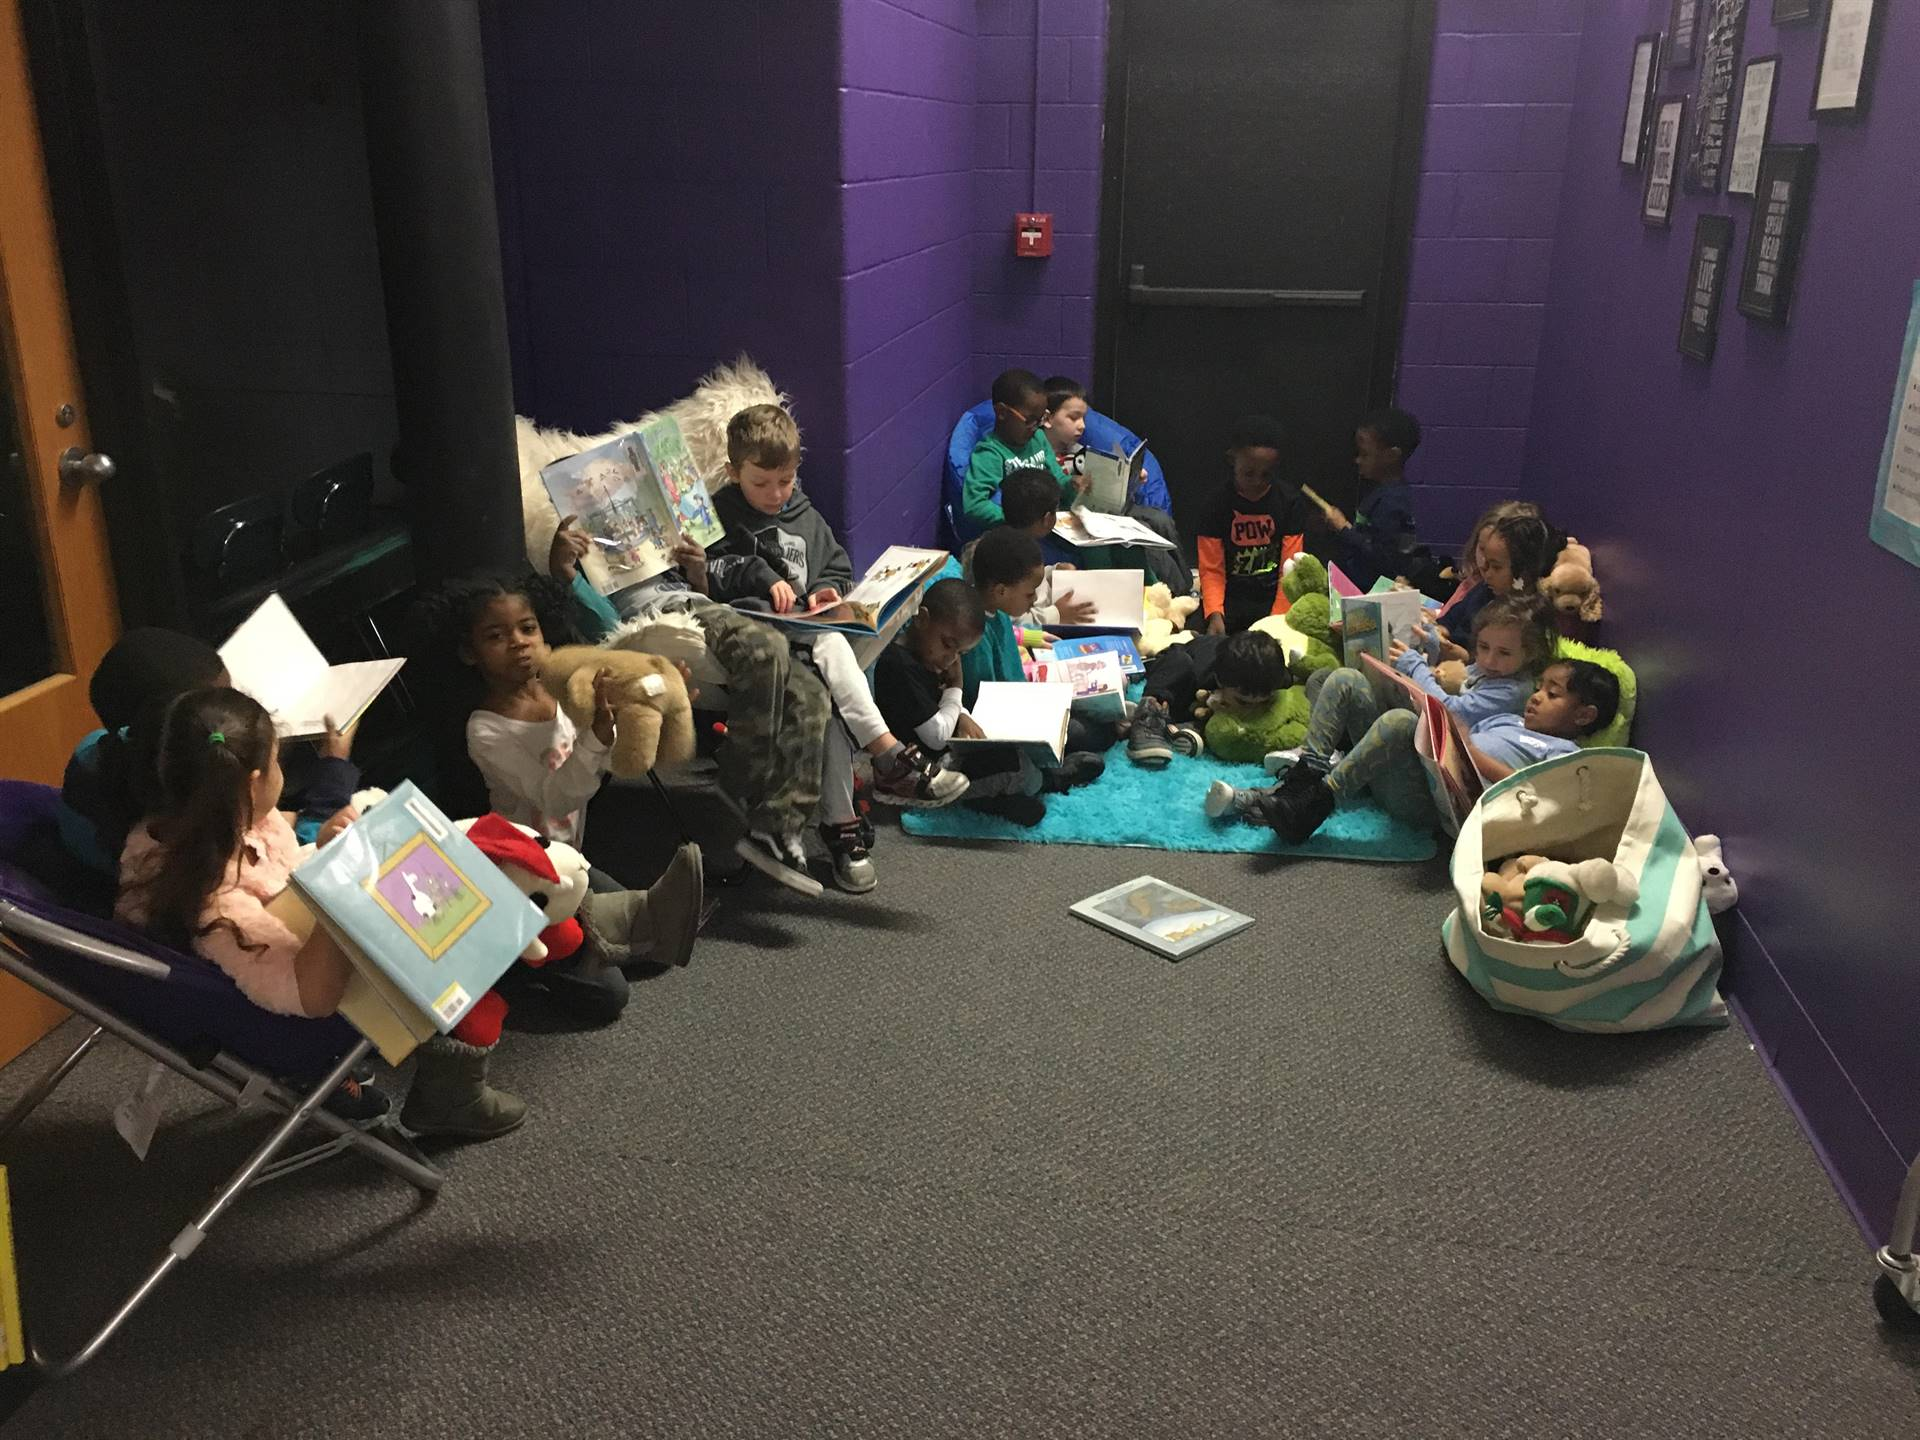 Sharing Books in Ms. Riley's Book Nook